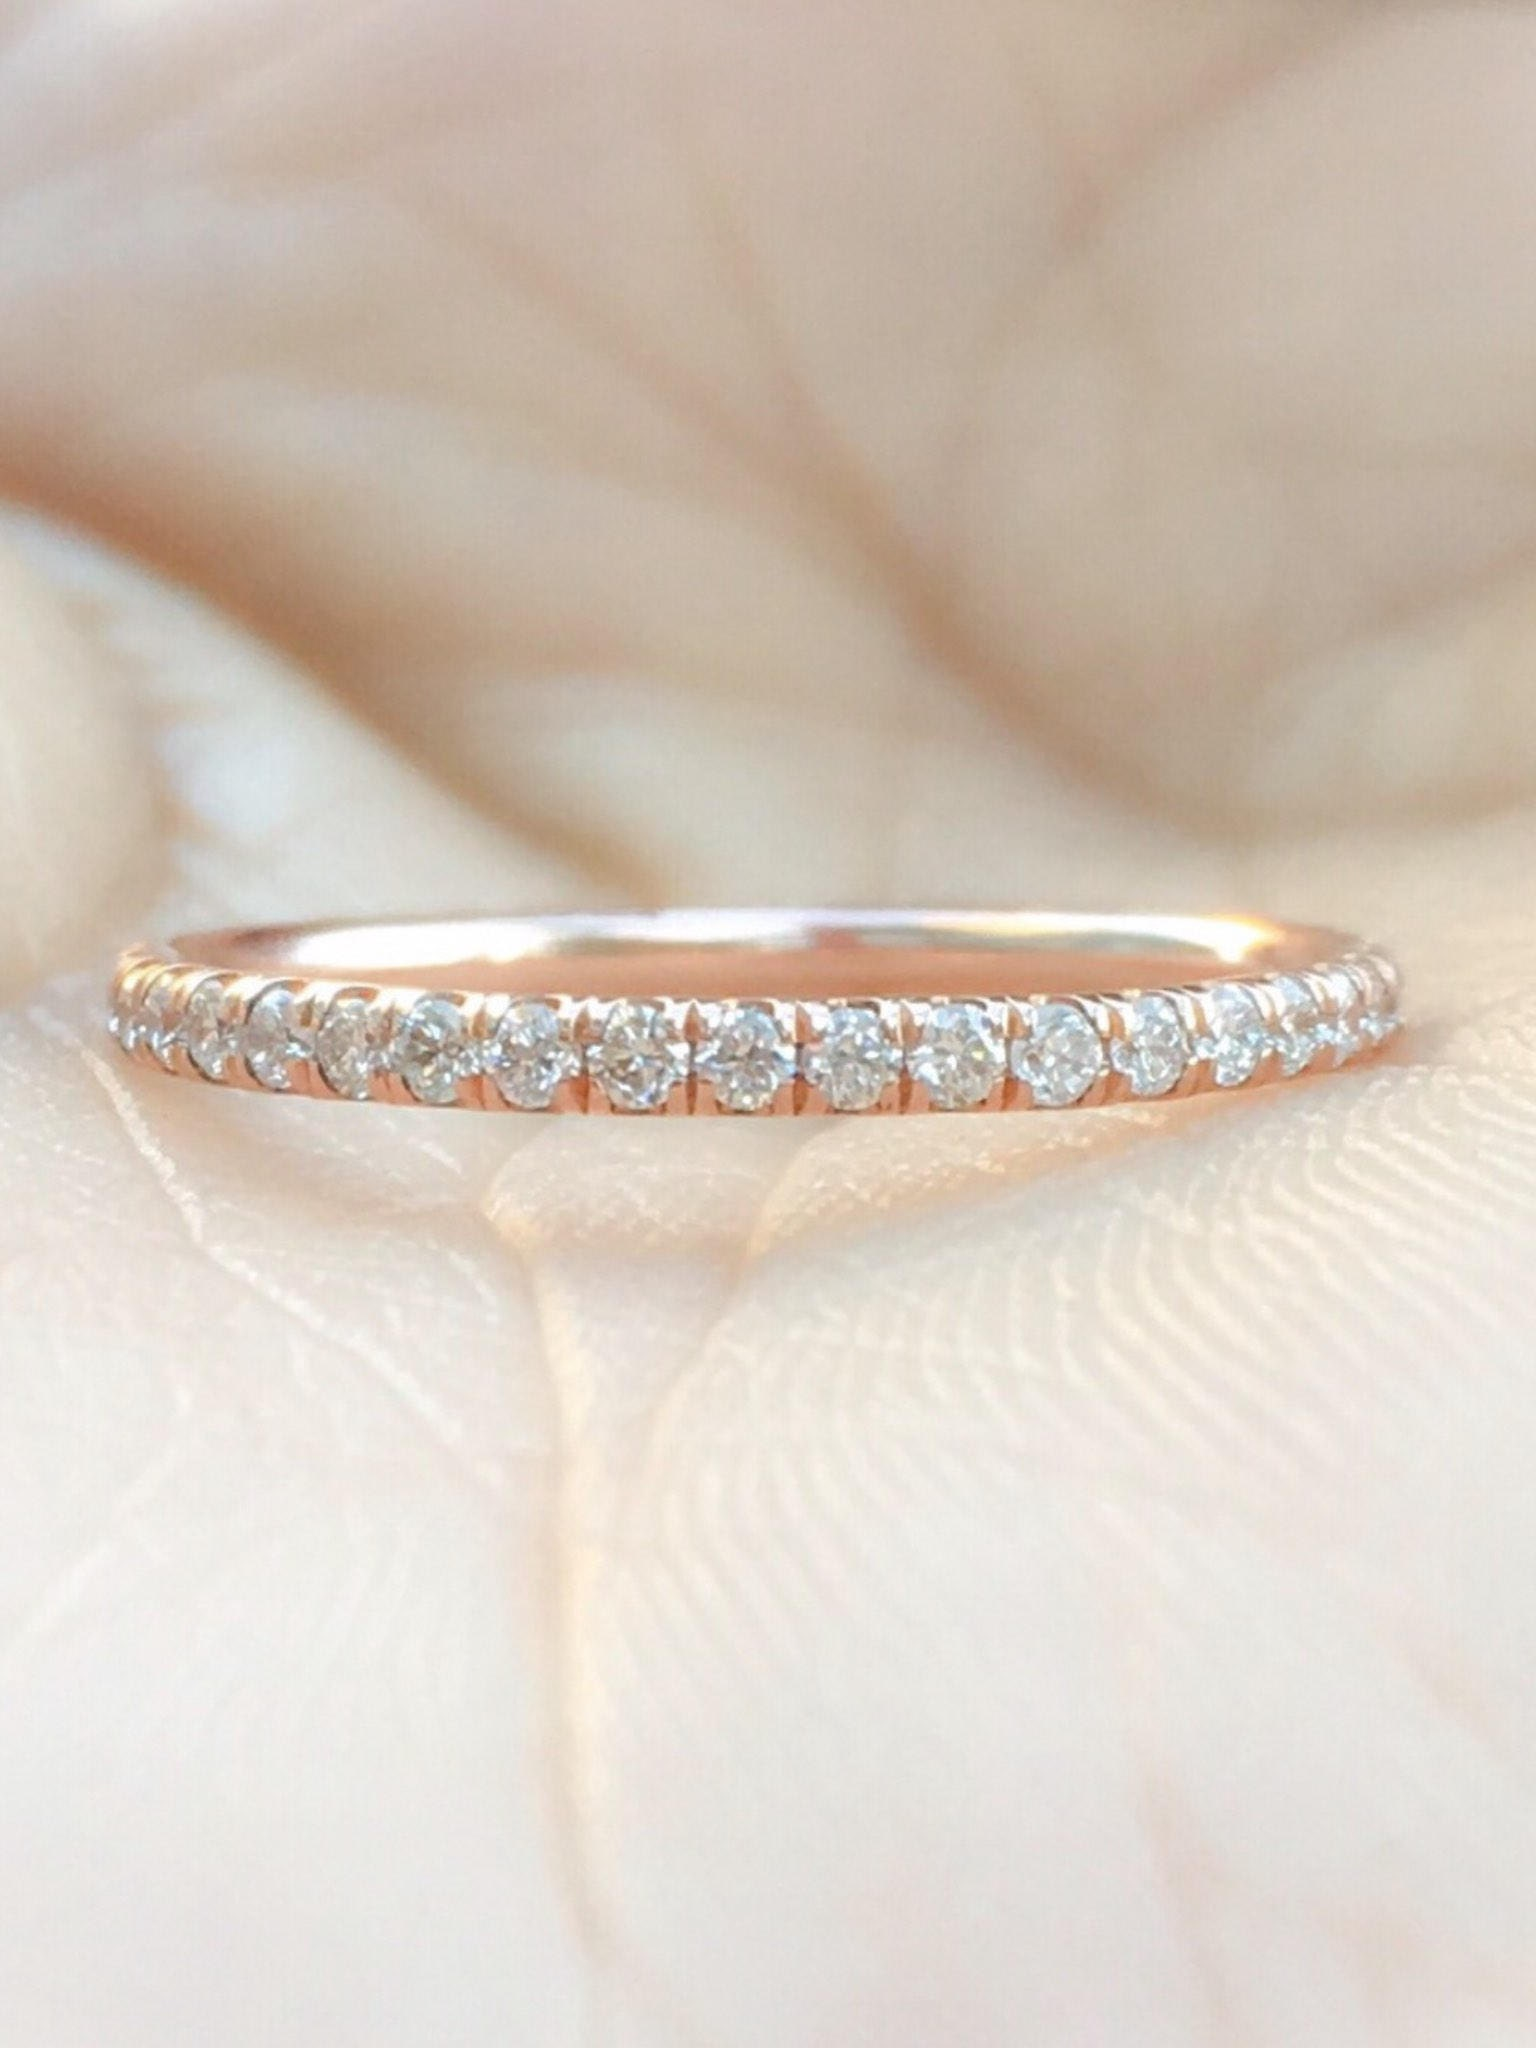 pinterest jewelry diamond pin bands ring allegria full band eternity wedding